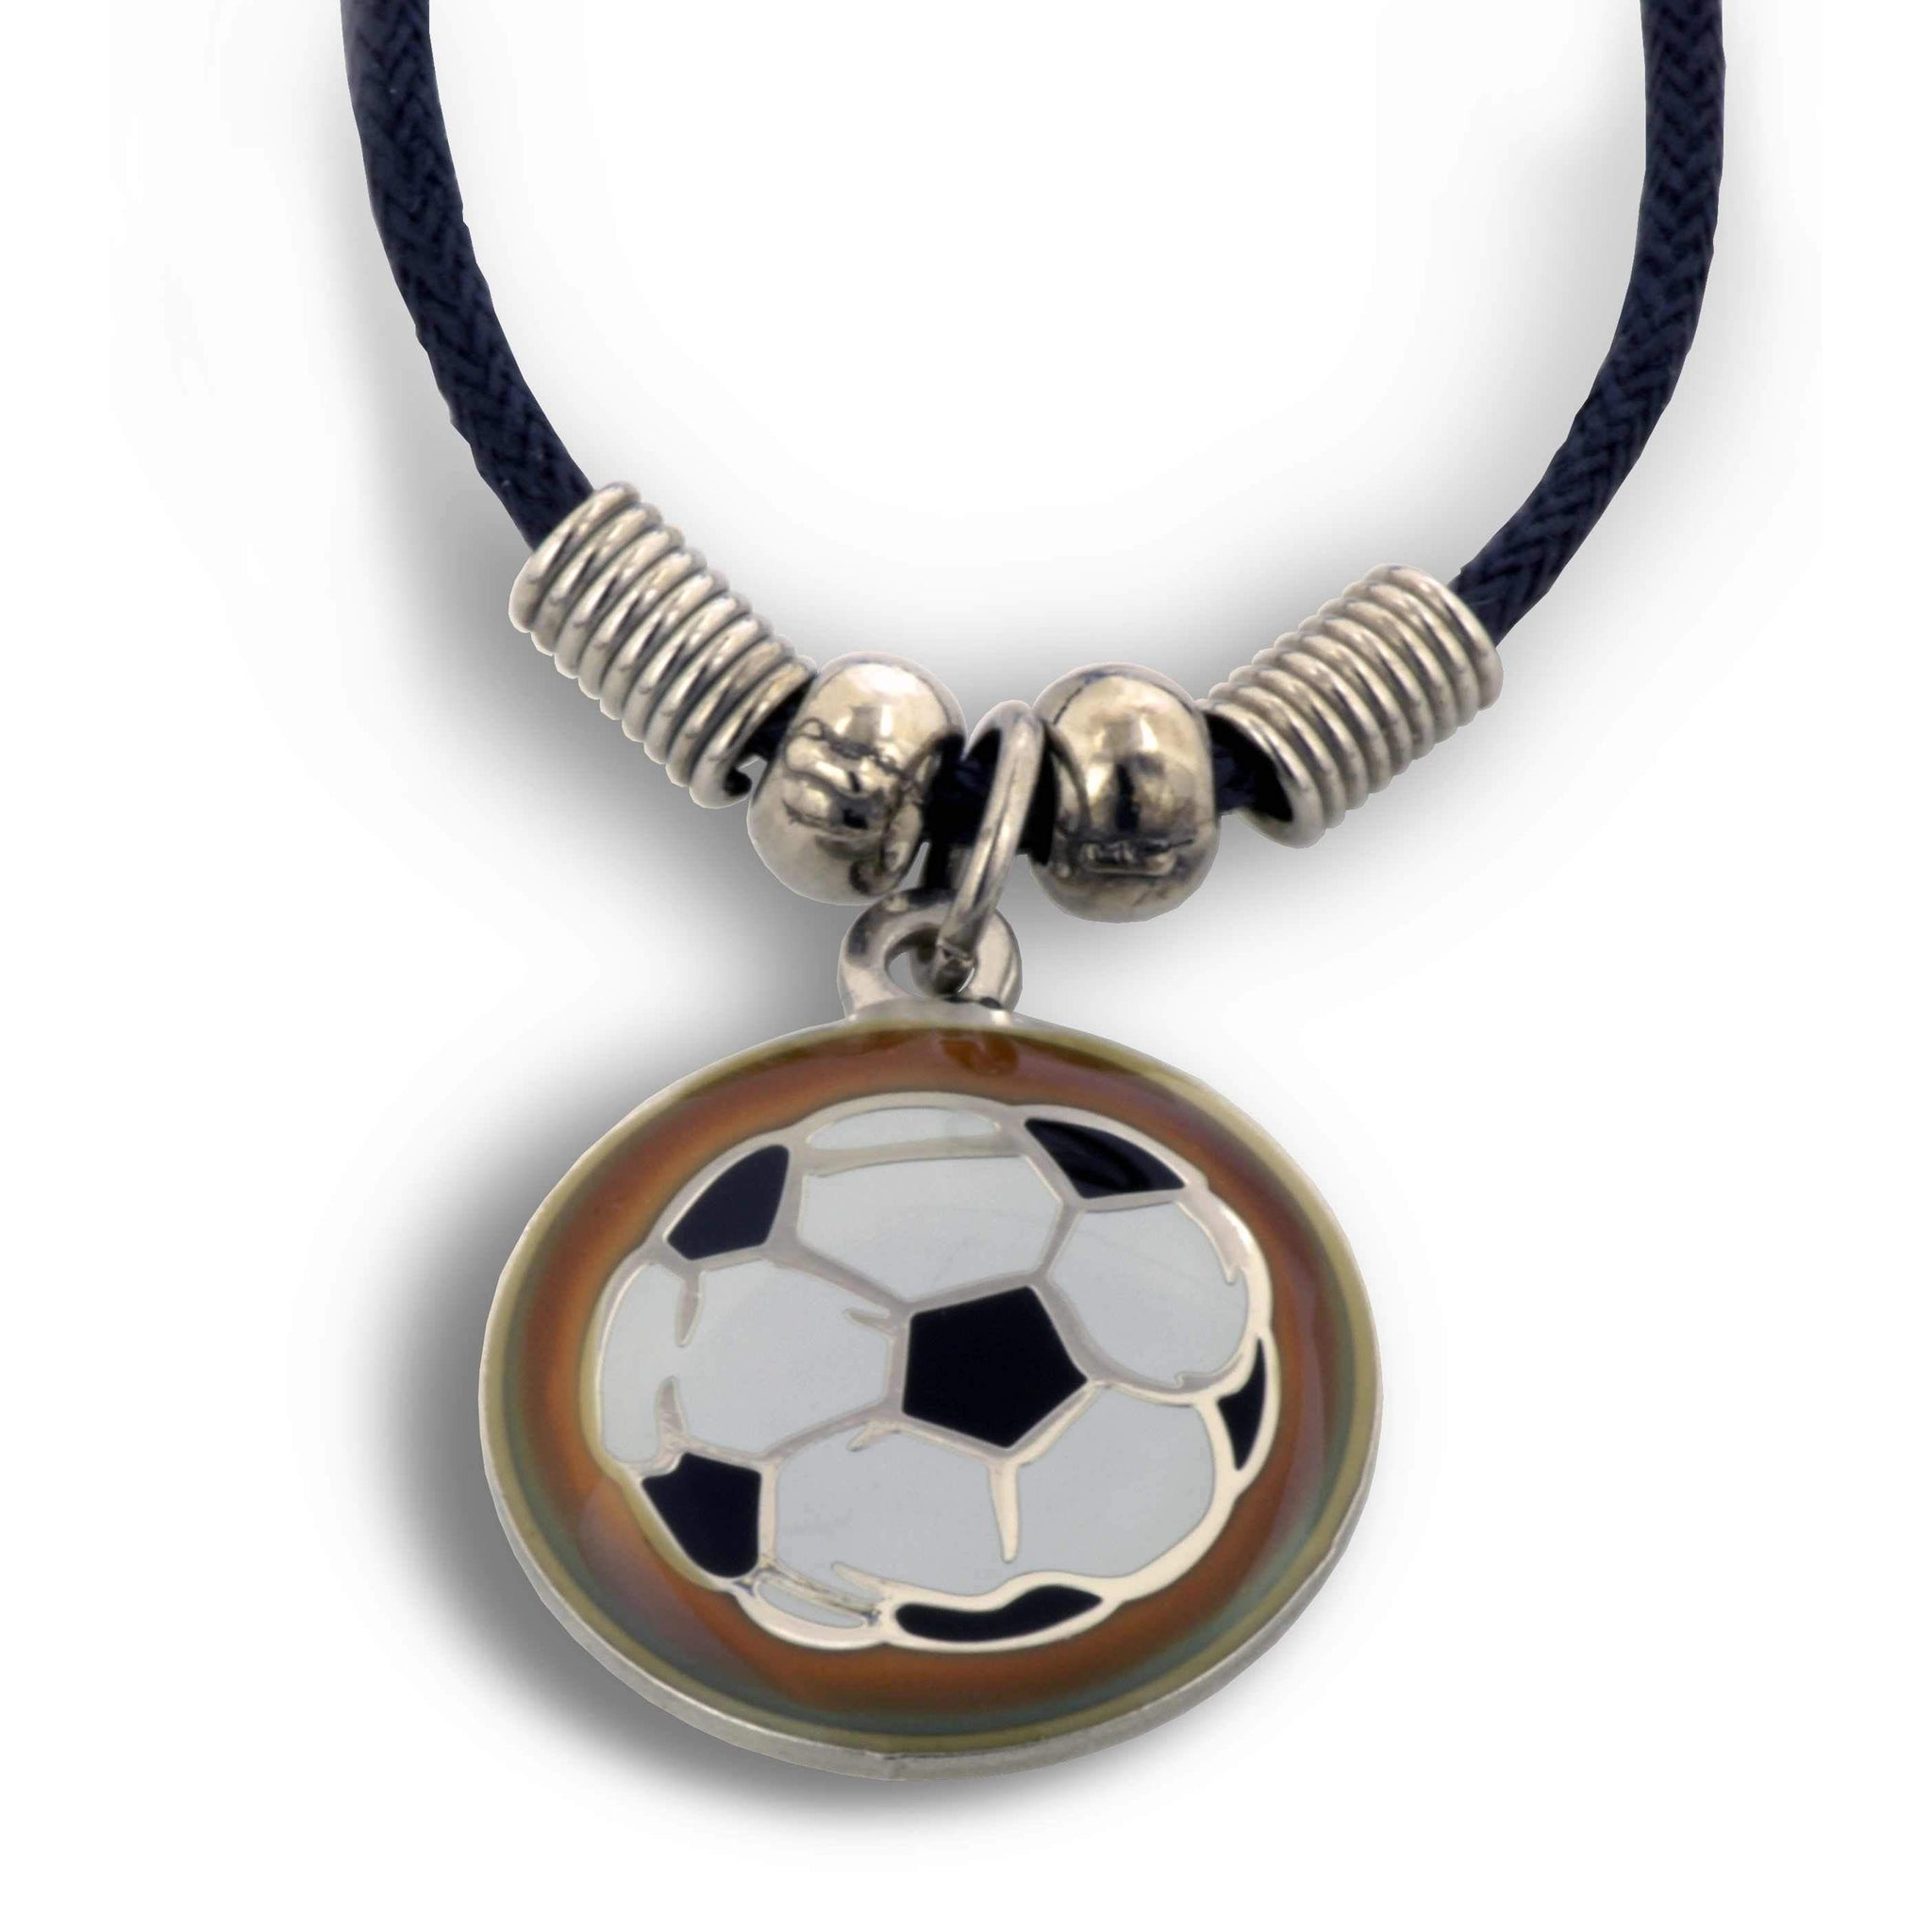 pendant by fullxfull necklace listing il jewelry silver filled soccer wholesaleretail sterling sold pmwx cleat